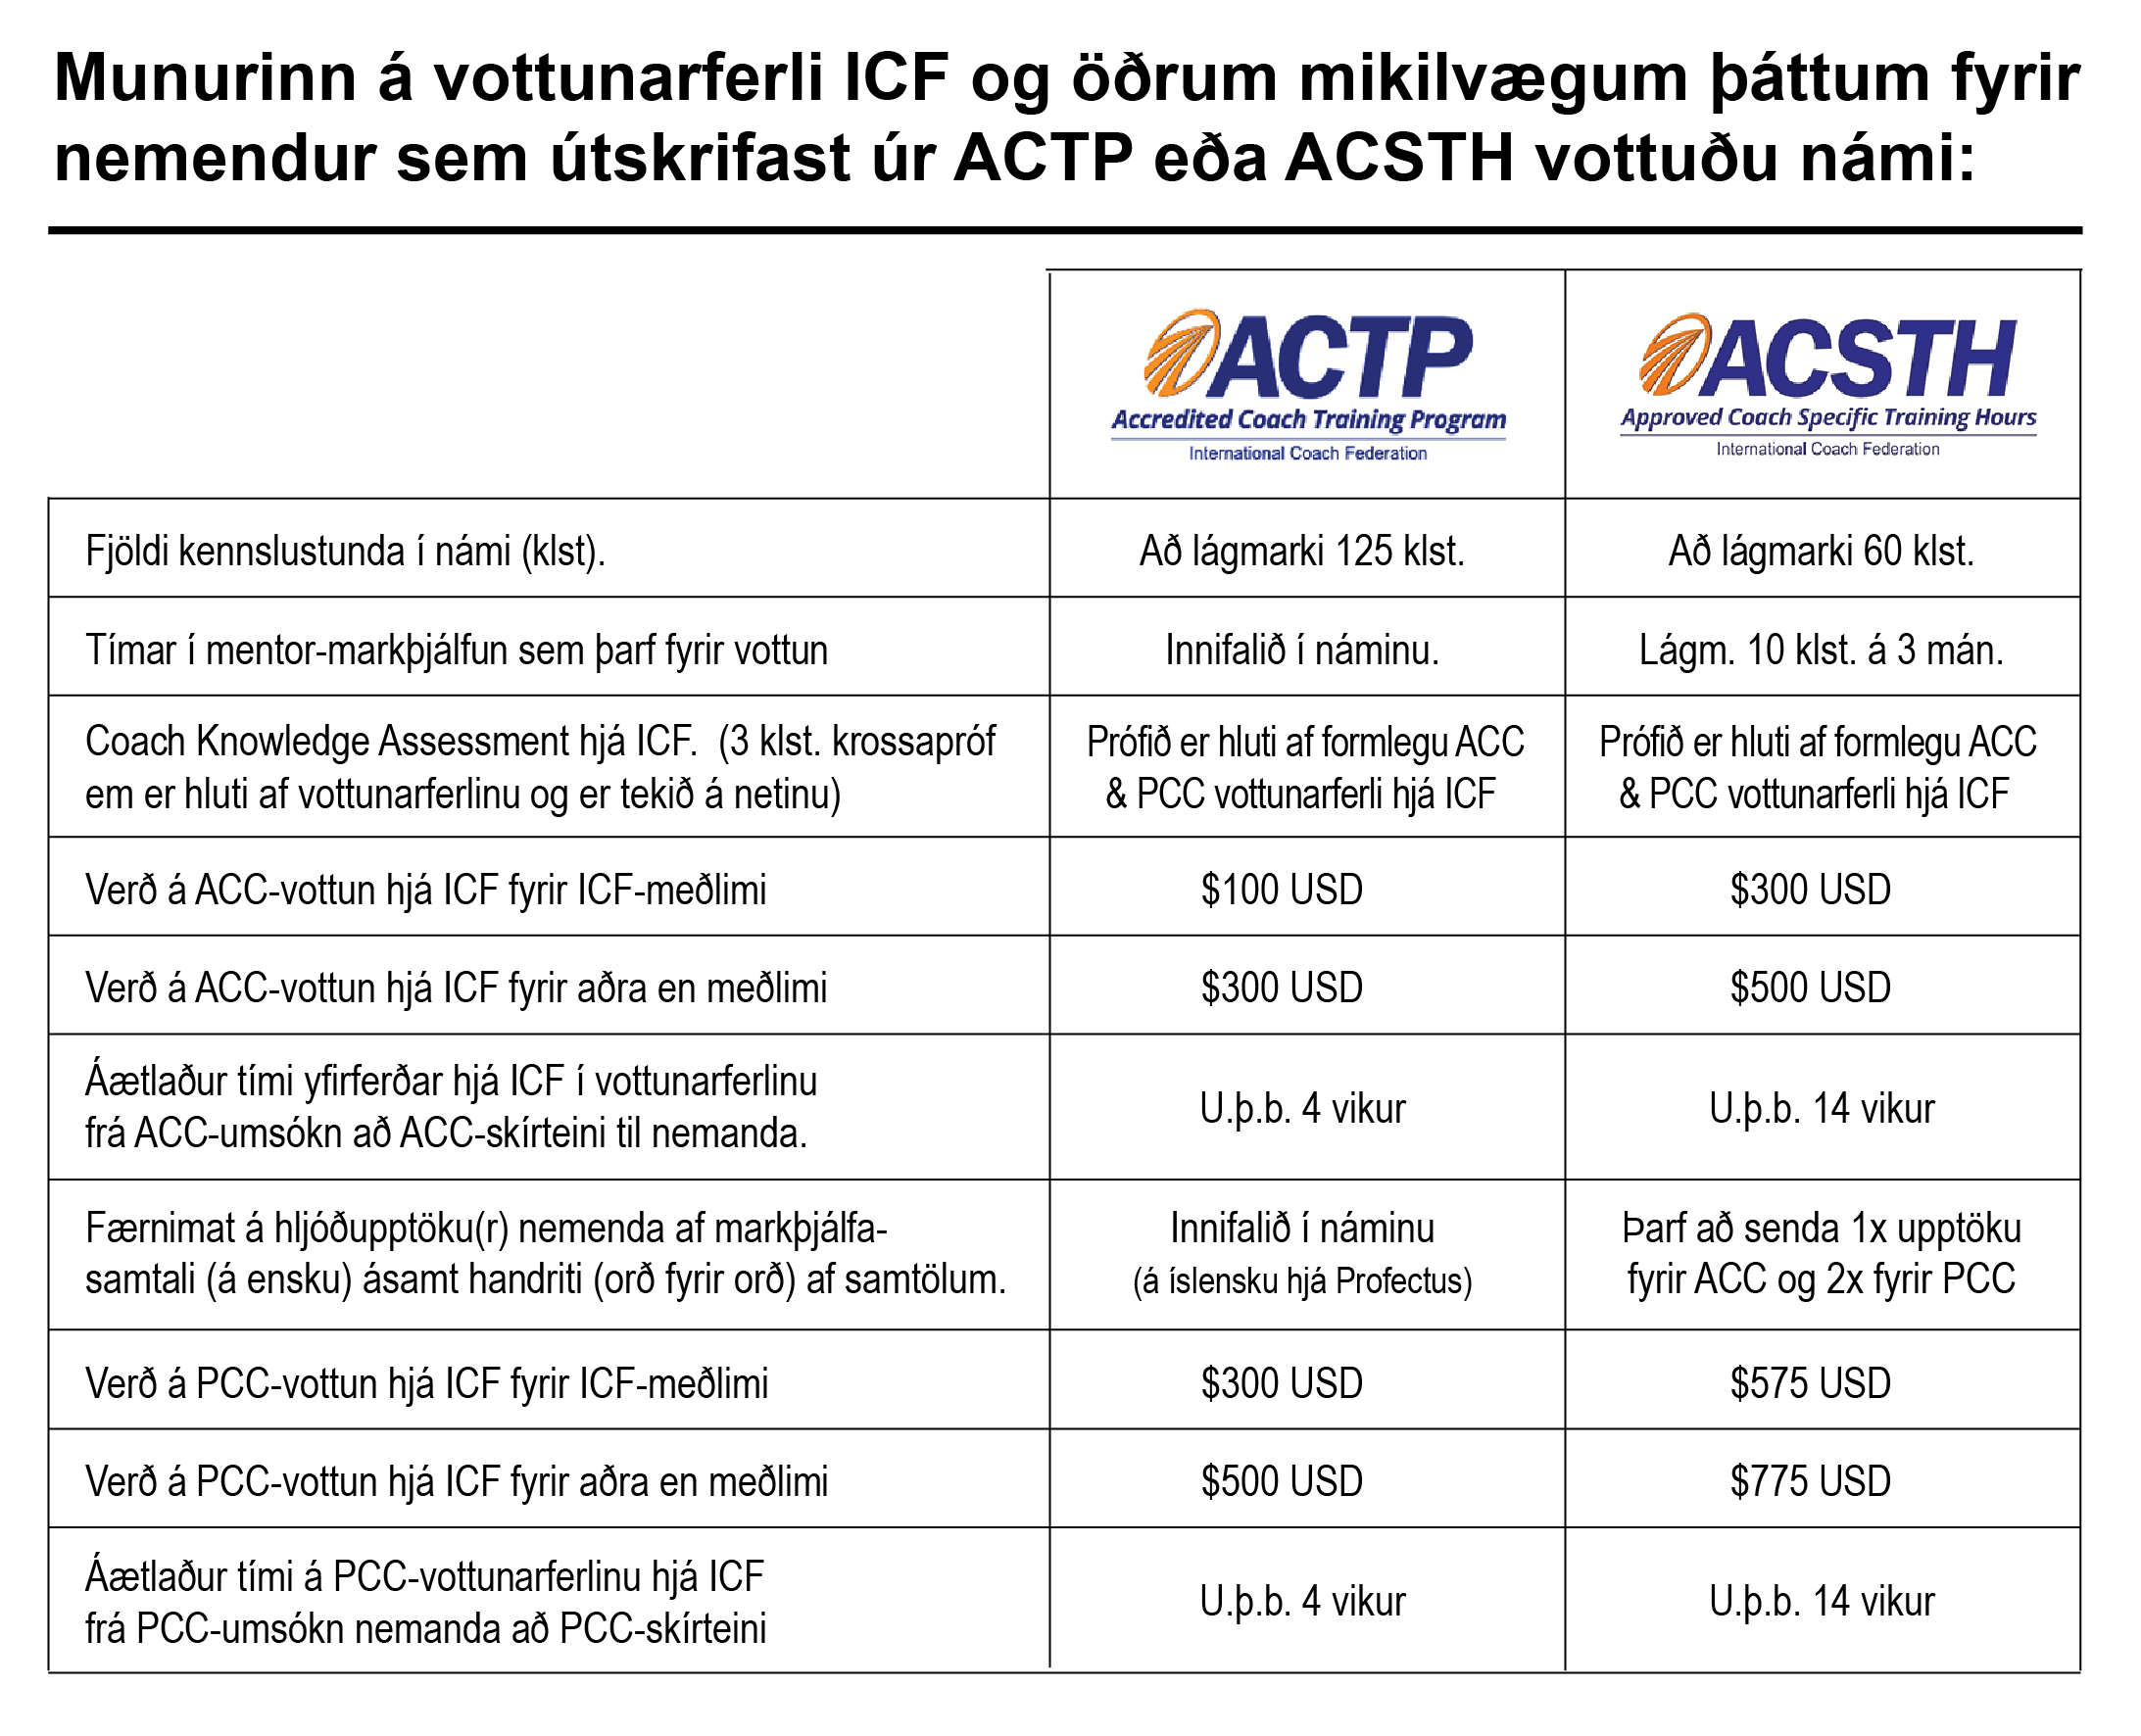 ACTP vs. ACSTH